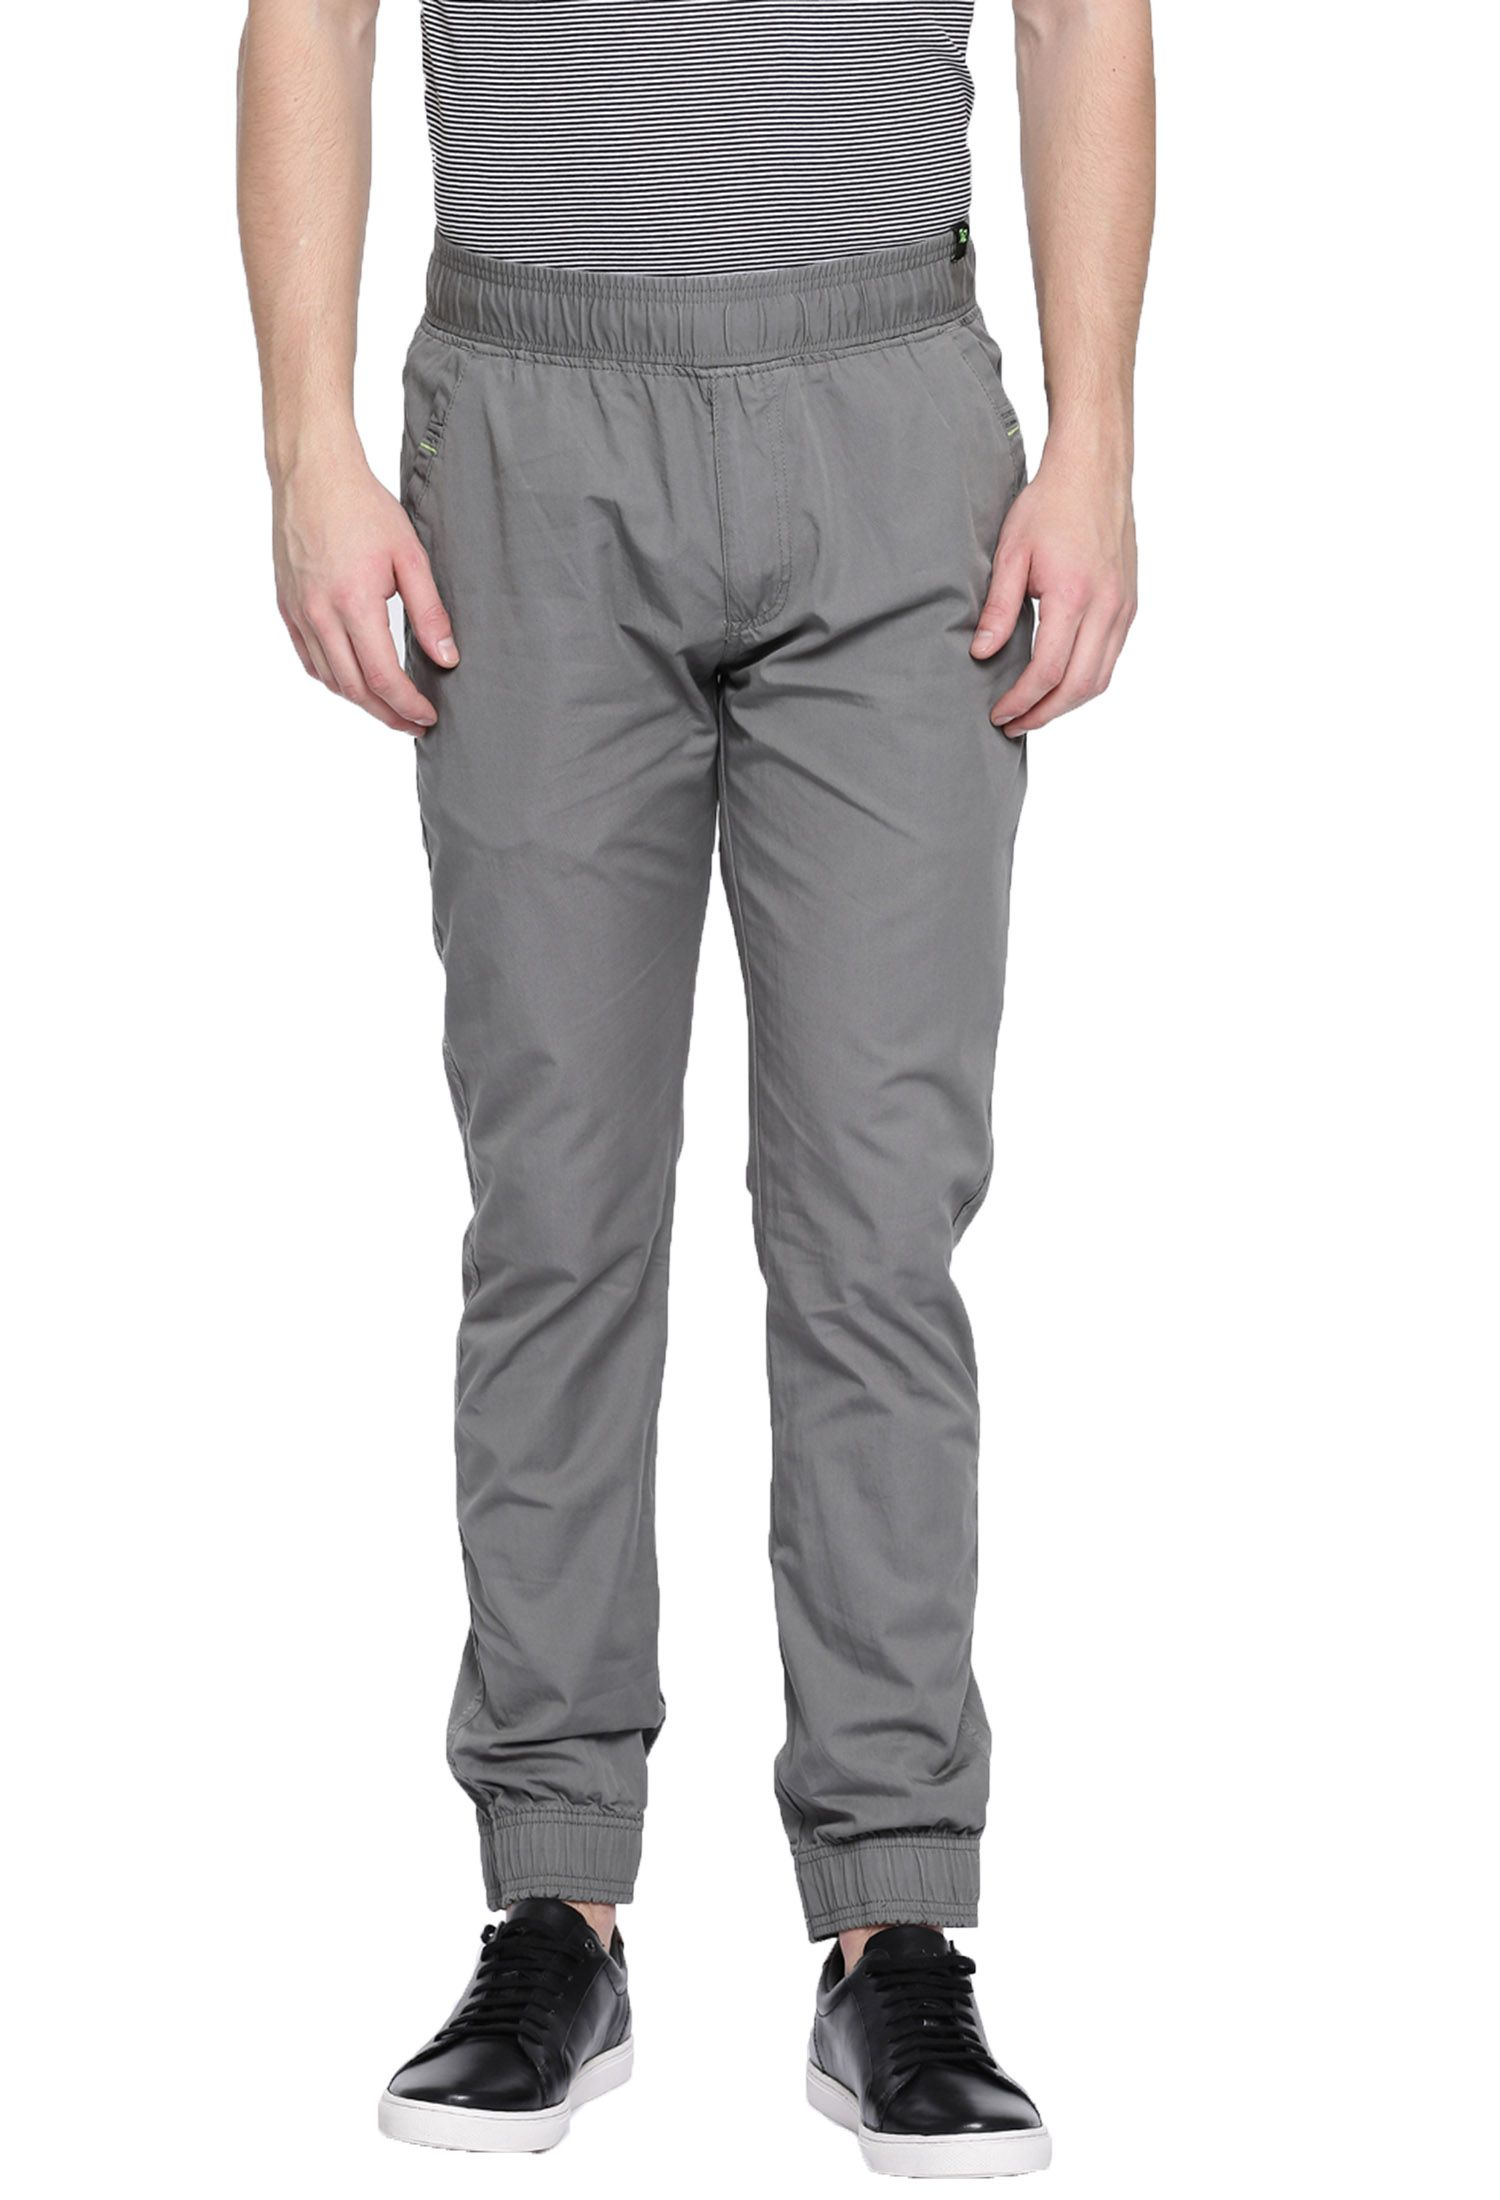 FIFTY TWO Grey Slim -Fit Flat Joggers